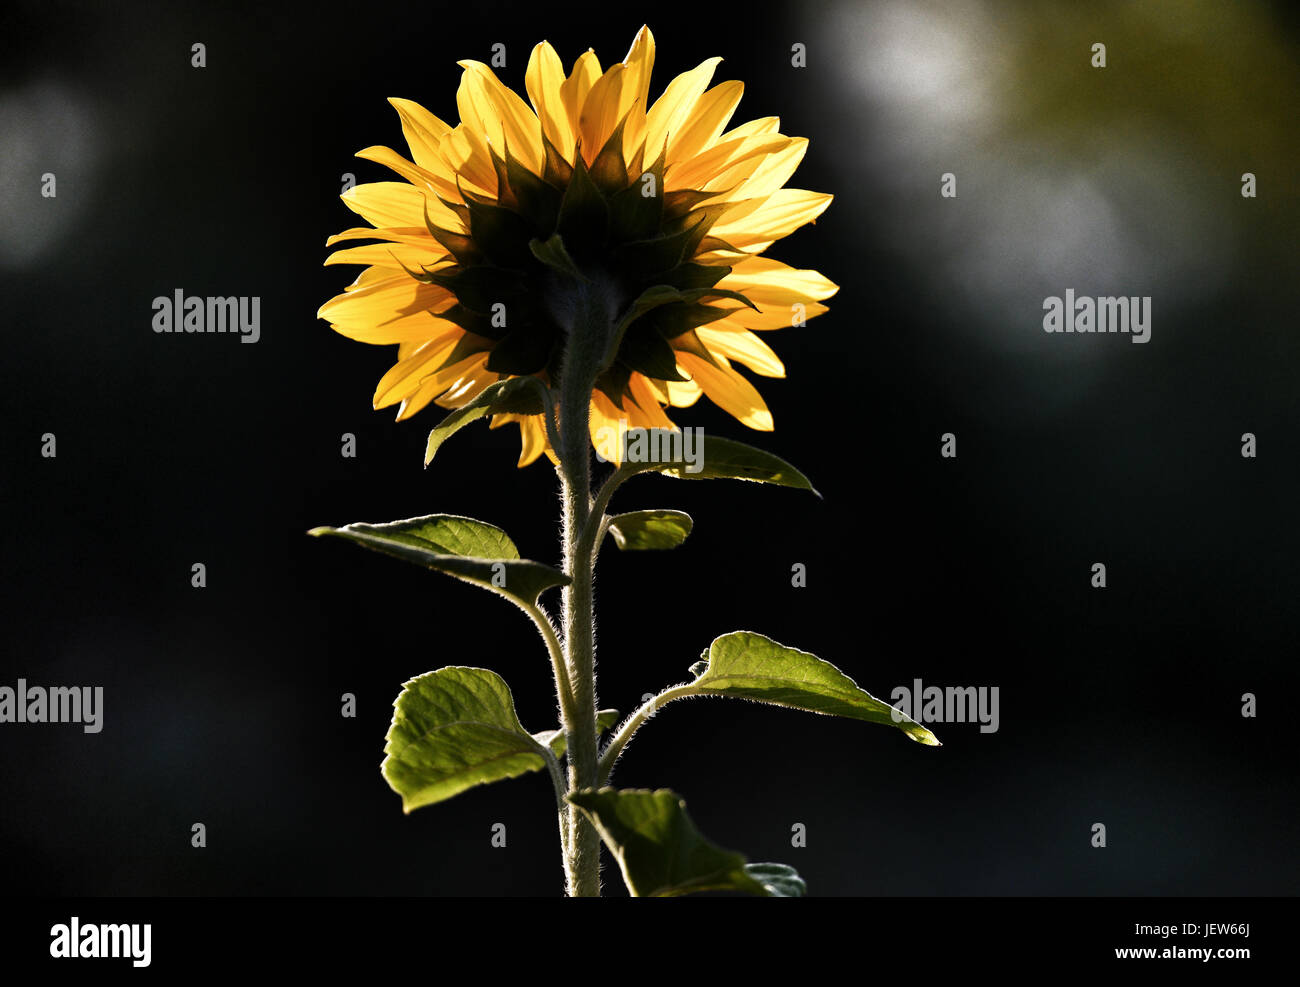 Picture by Paul Slater/PSI - Sunflower facing towards the sun in summer. - Stock Image